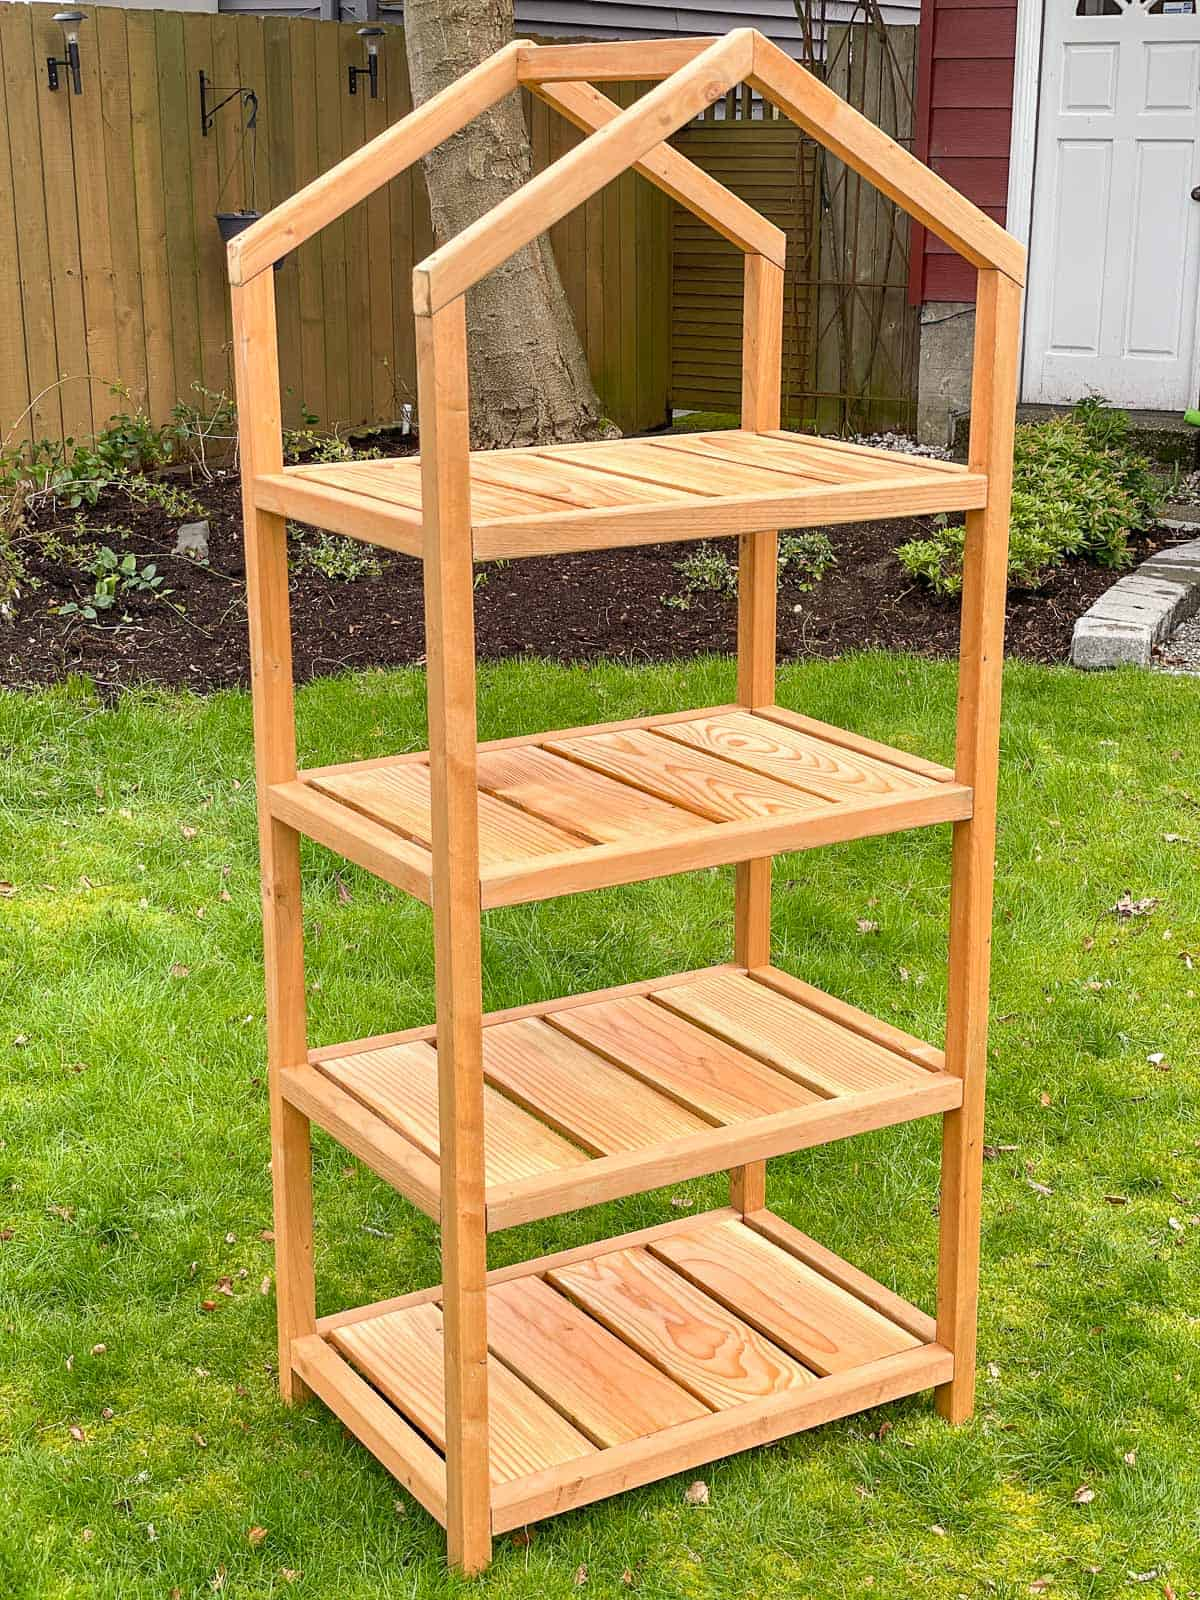 DIY mini greenhouse without cover in backyard